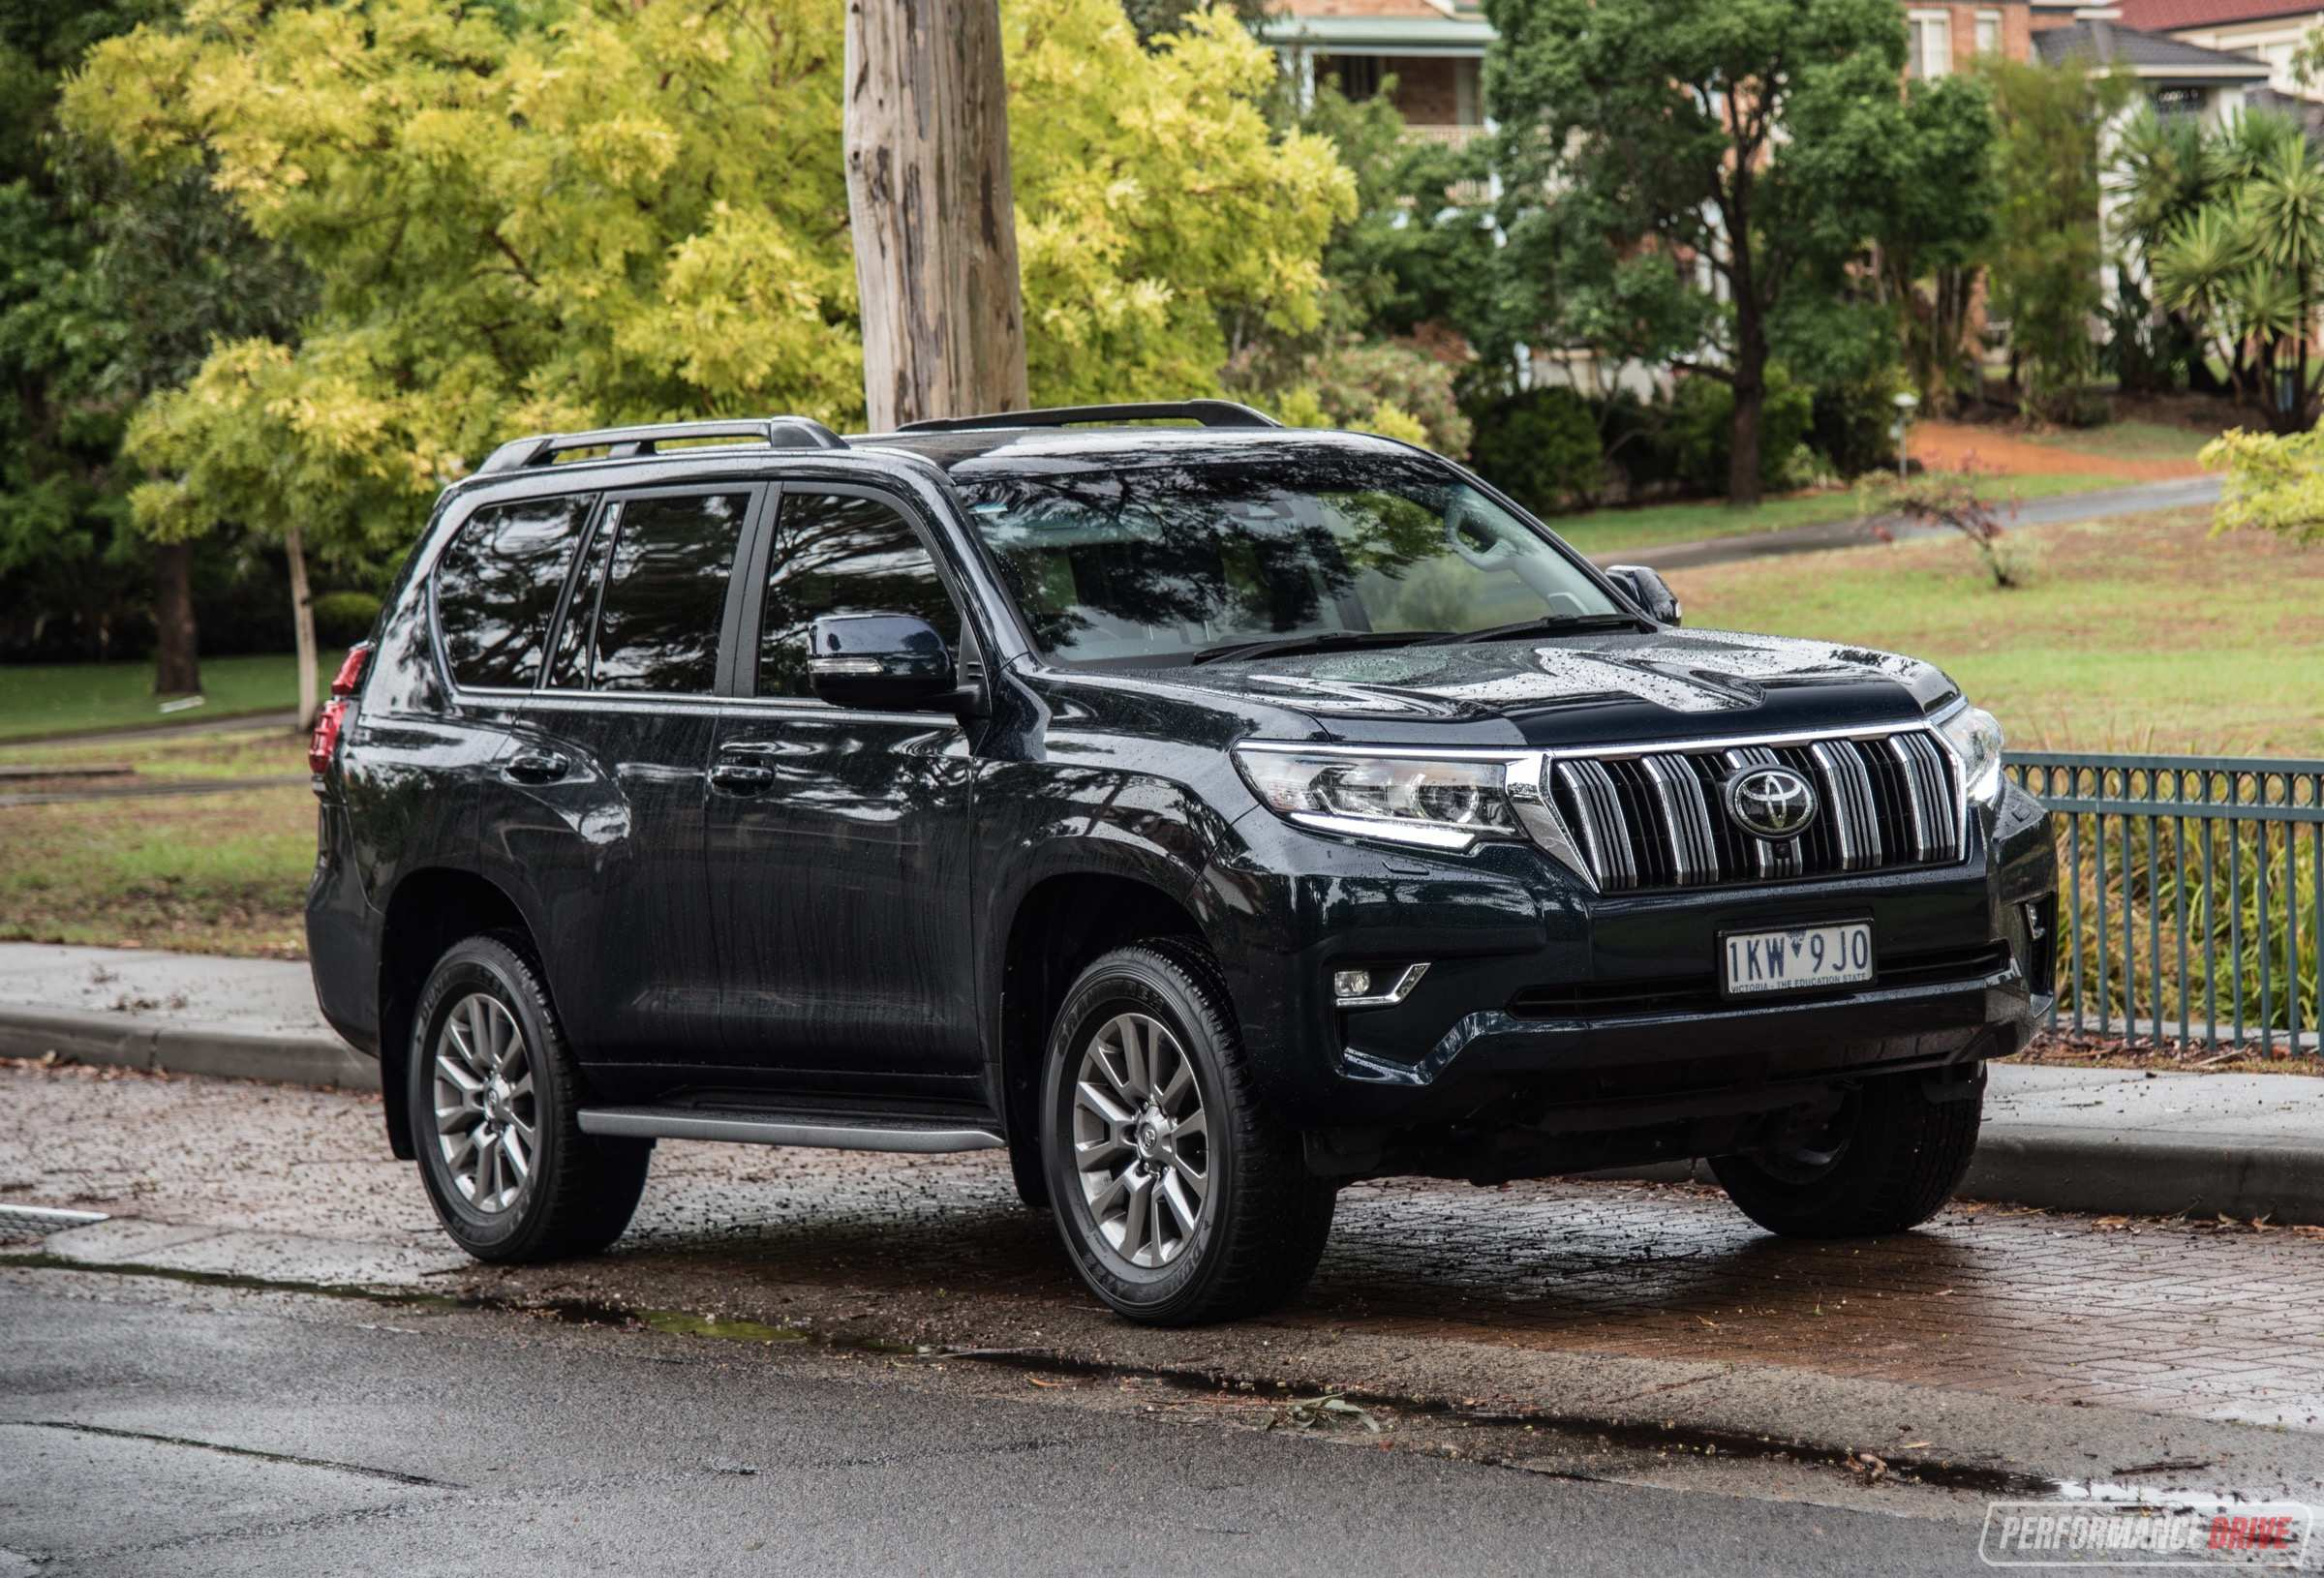 69 The Toyota Prado 2019 Australia Reviews